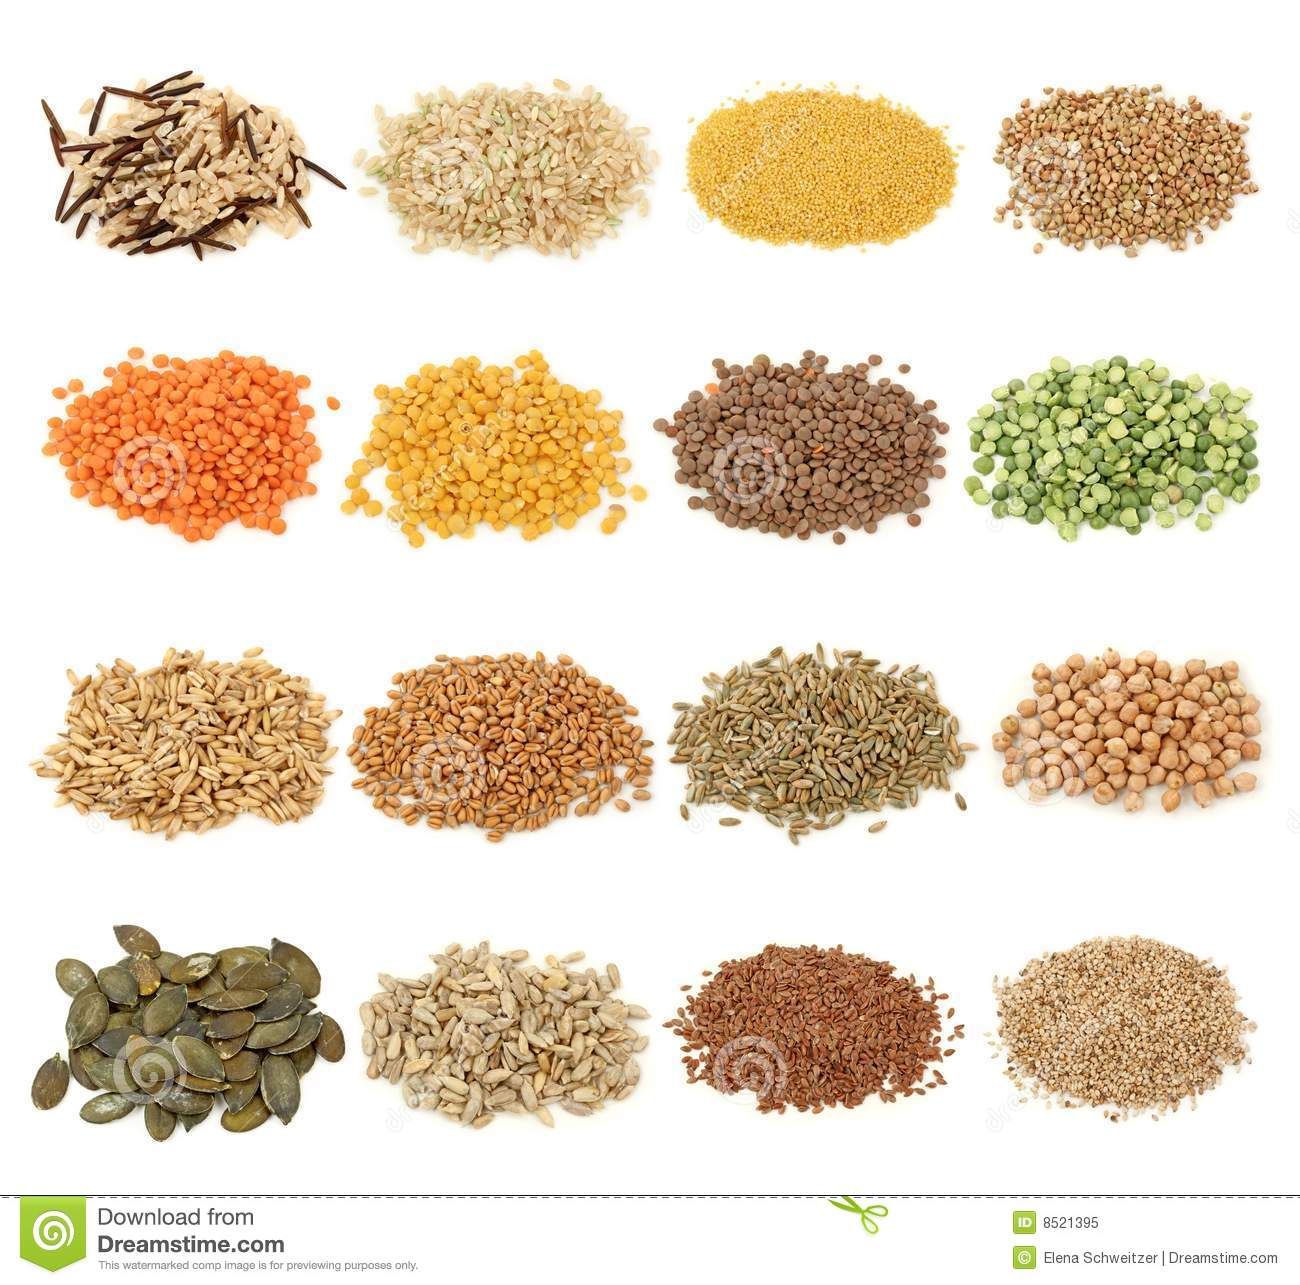 Cerealgrain And Seeds Royalty Free Stock Photo   Image  8521395